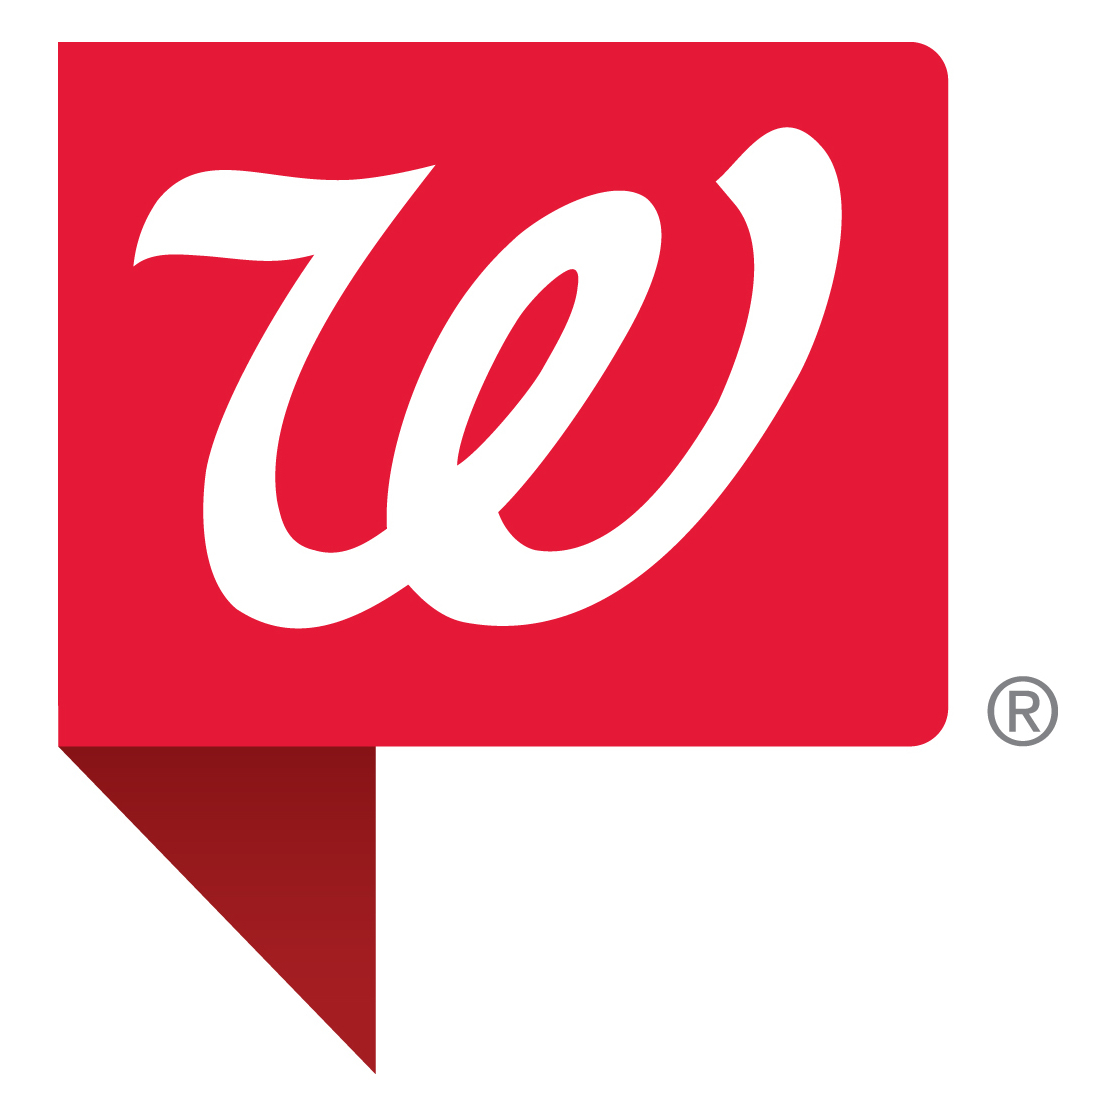 Walgreens Pharmacy at Palmetto Medical Plaza